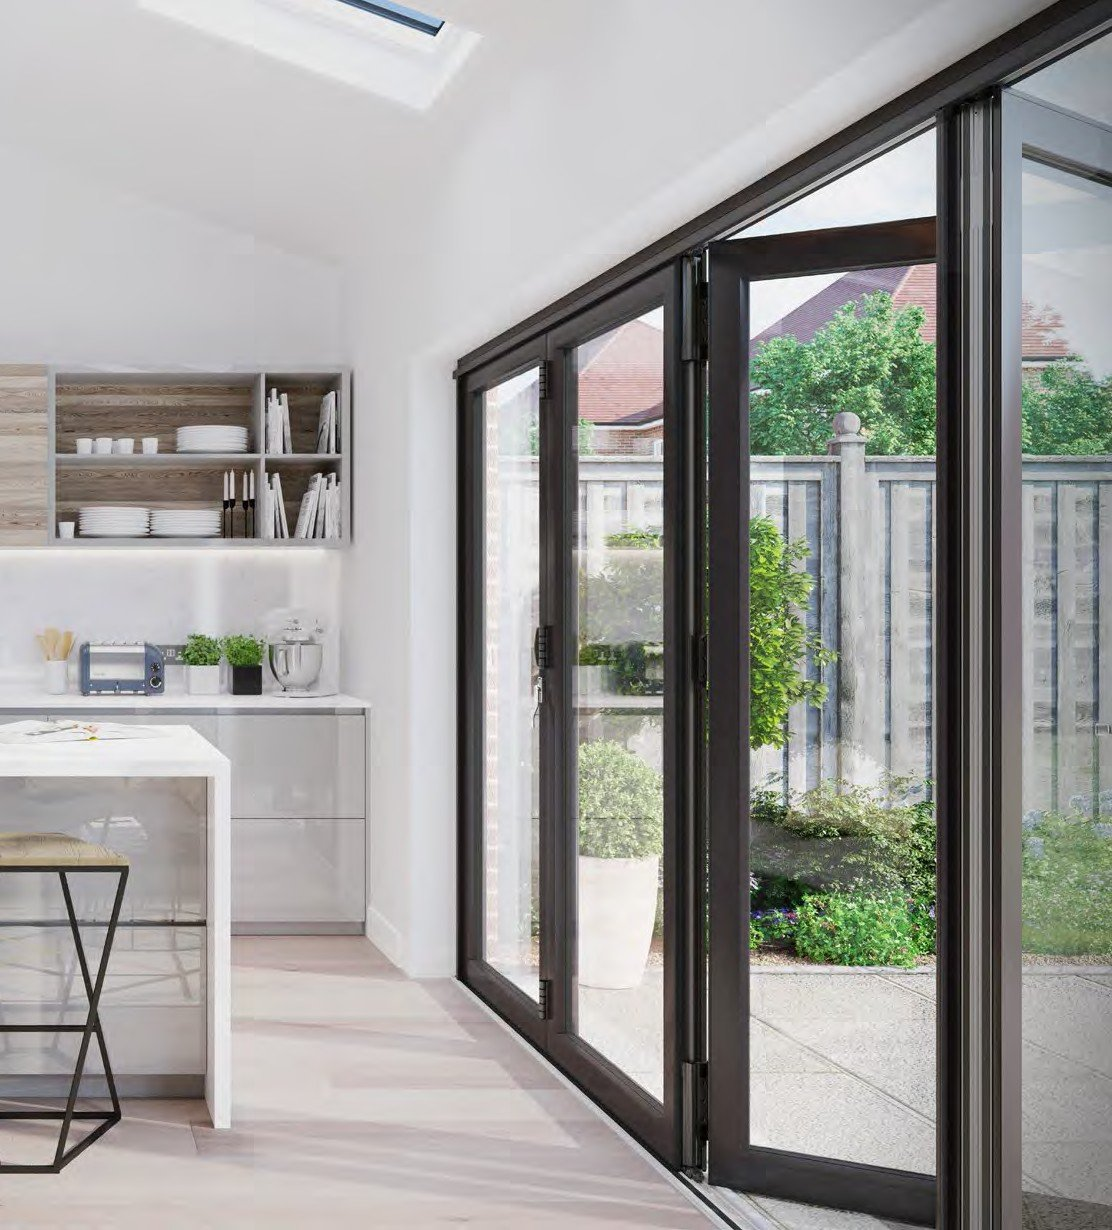 Warmcore Bi Fold Doors Specialist In The South West Of The Uk